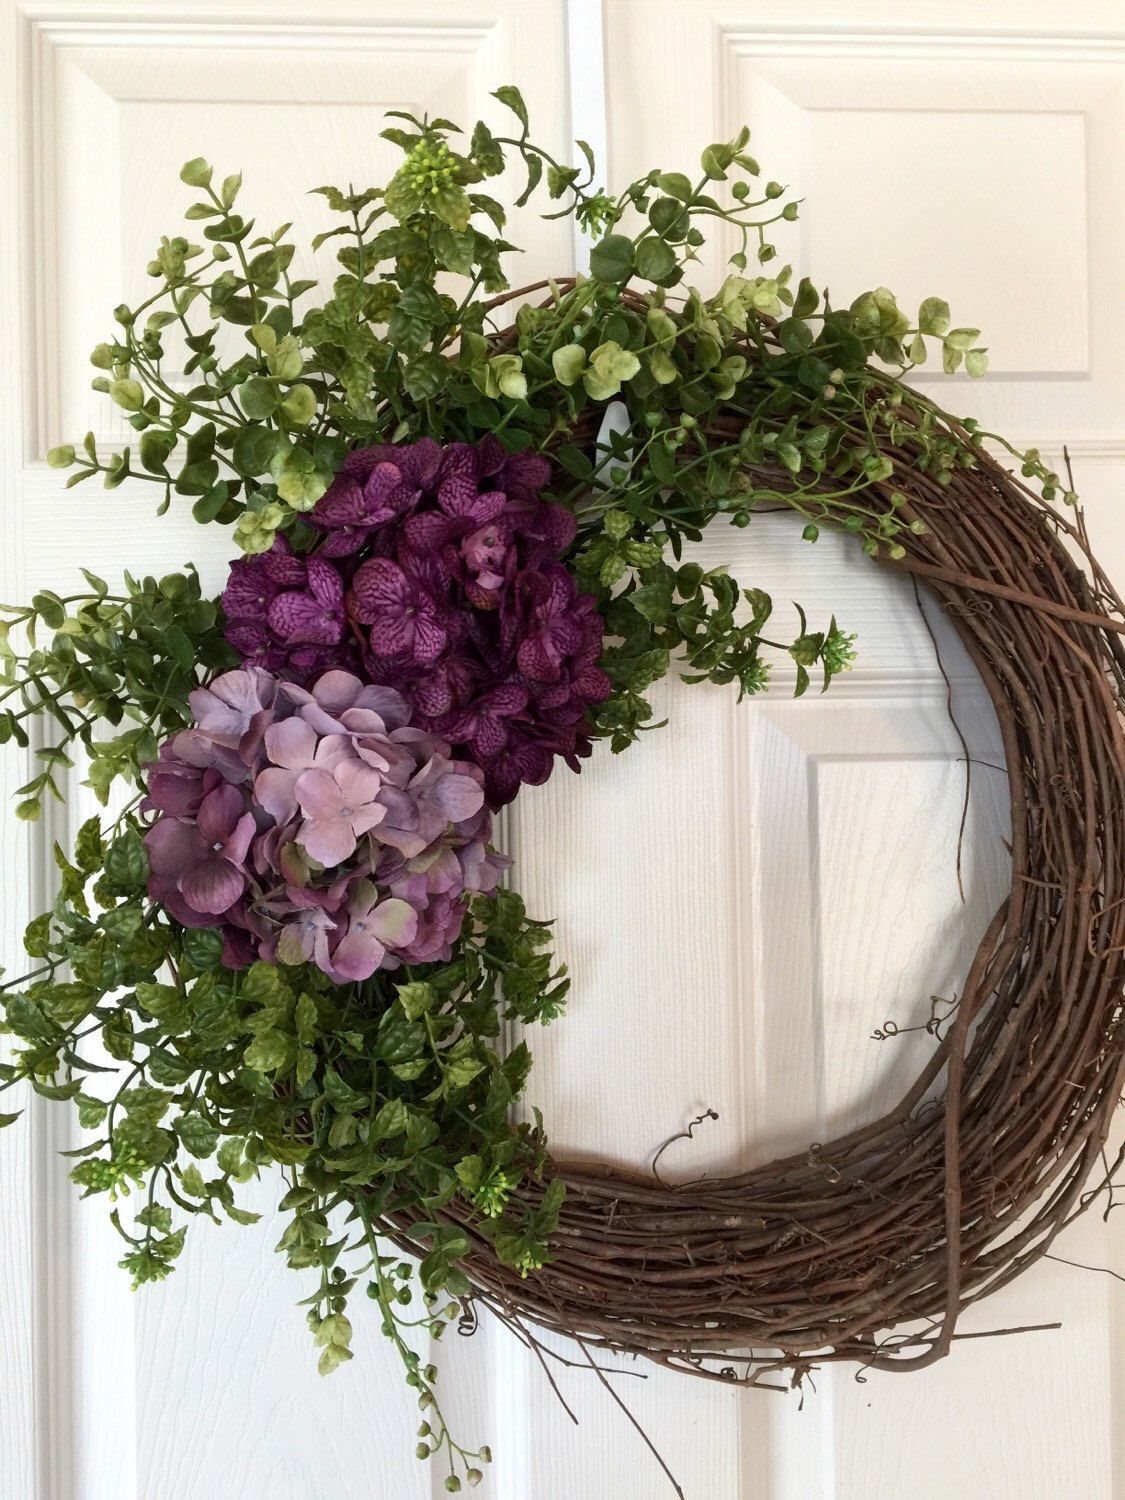 Pin By Tracey Puckett On Put A Ring On It Wreaths